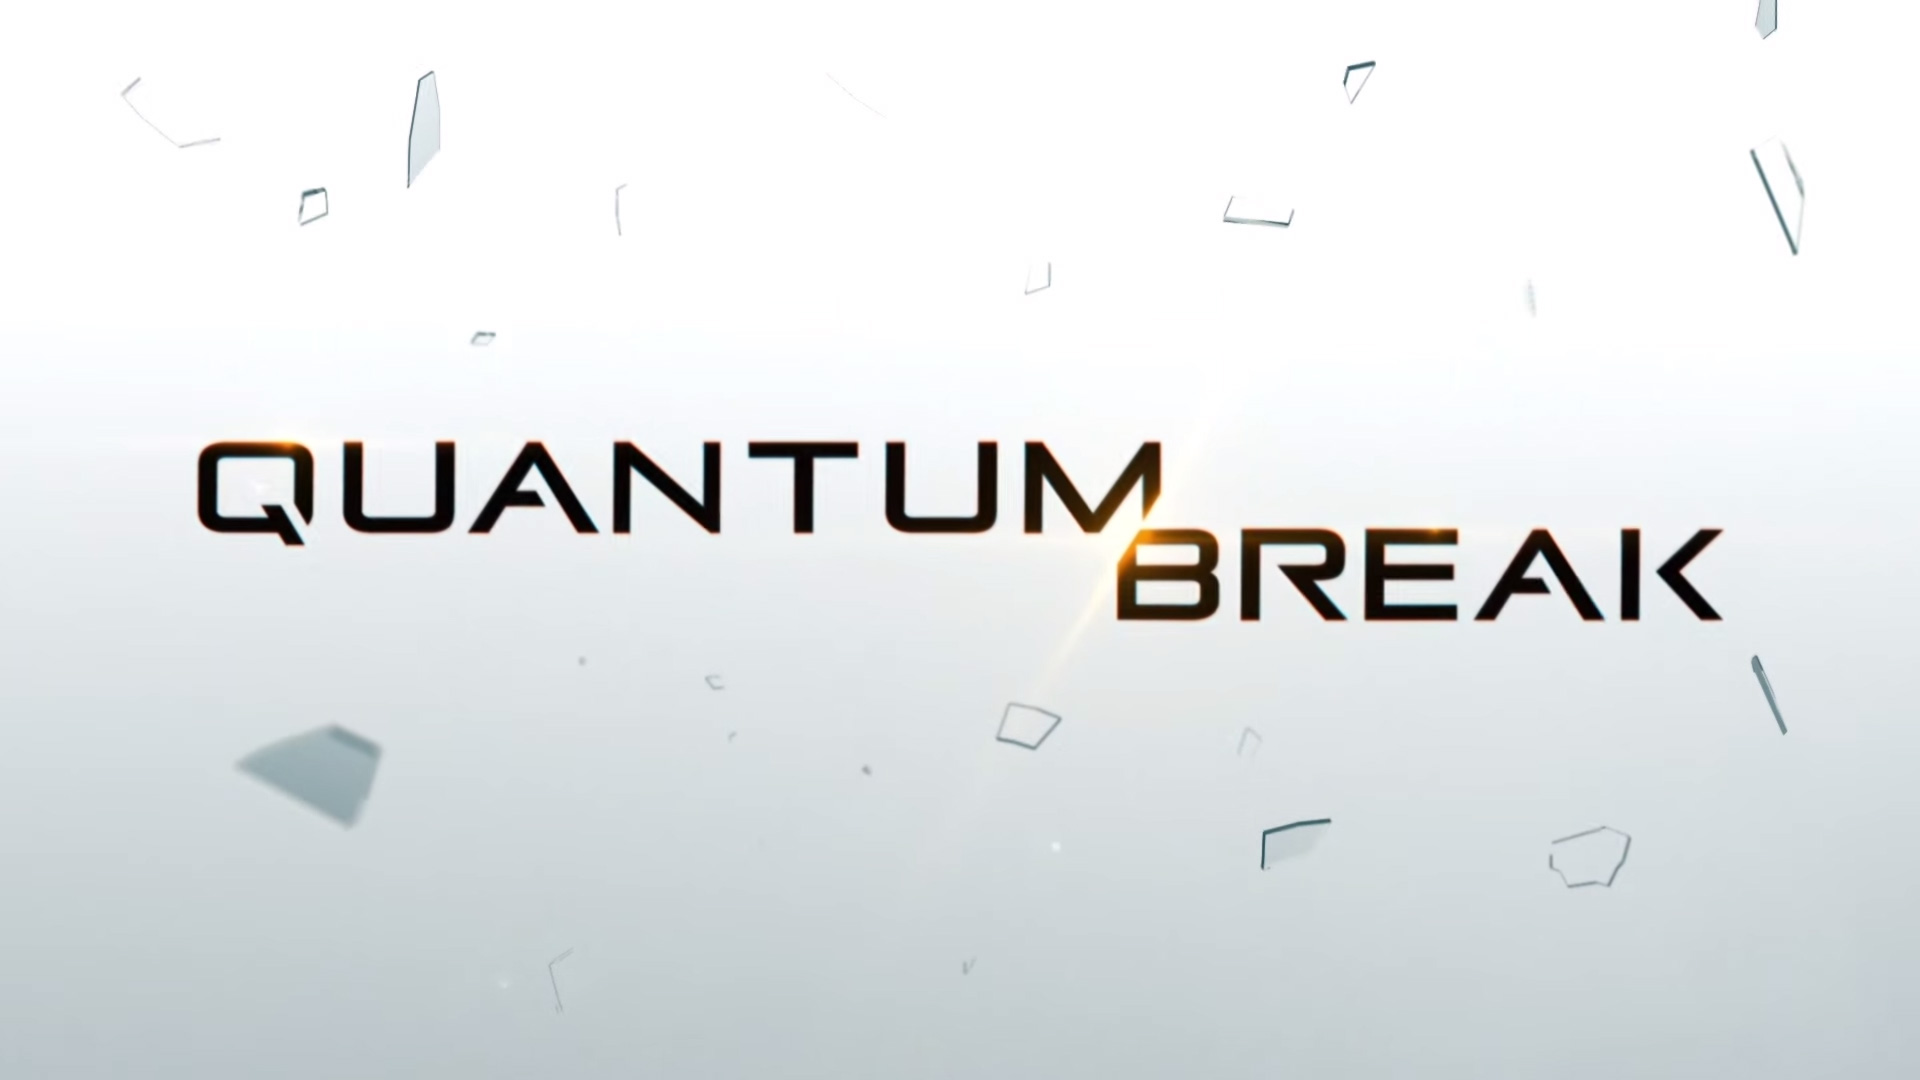 Most Beautiful Quantum Break Wallpaper | Full HD Pictures: fullhdpictures.com/quantum-break-hq-wallpapers.html/most-beautiful...